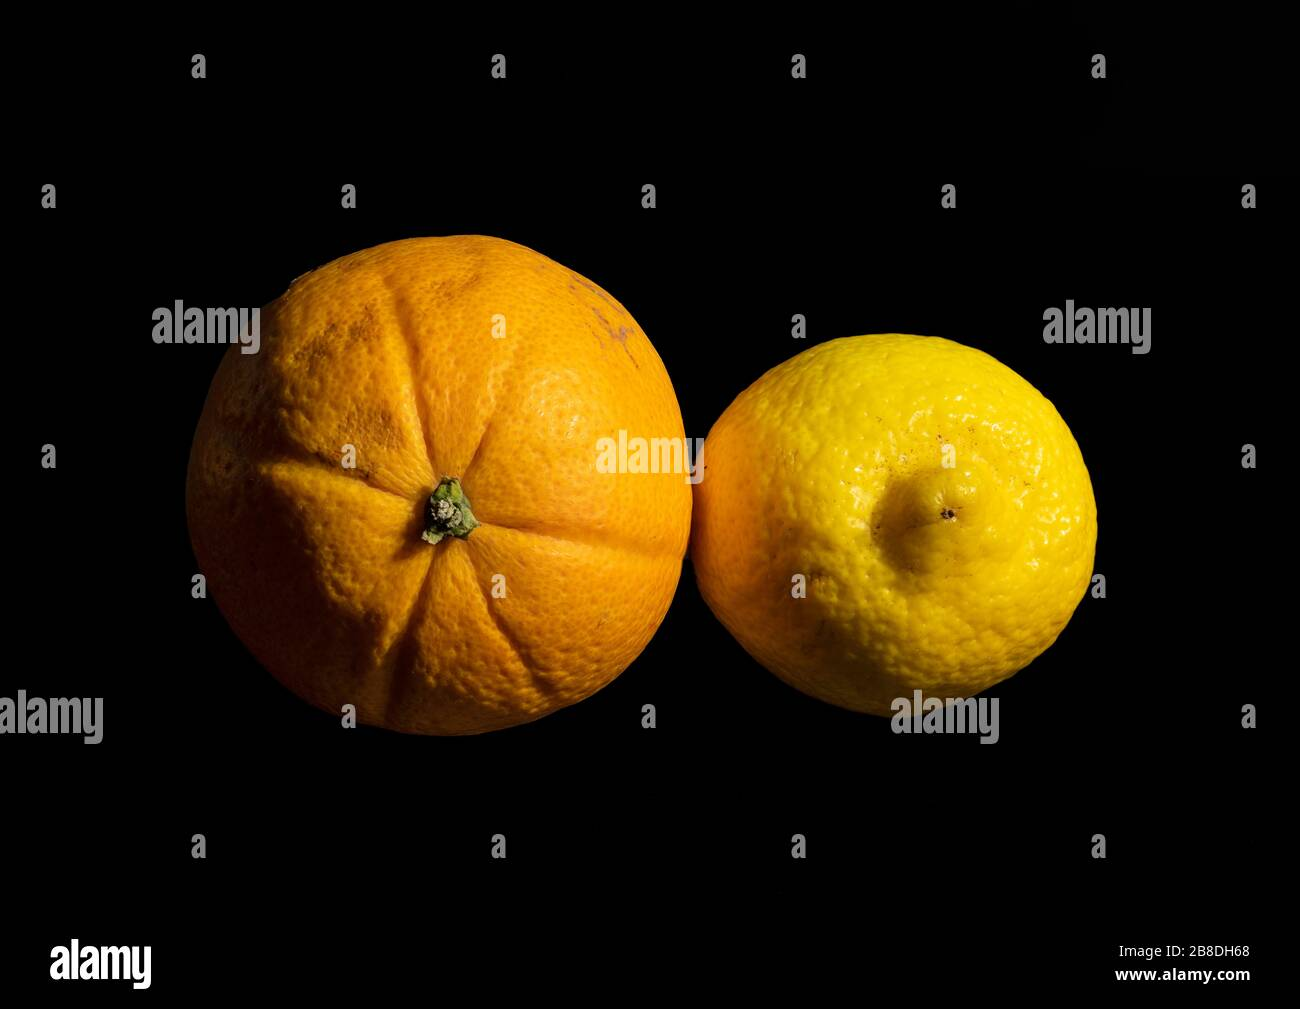 close-up-image-of-an-orange-and-lemon-us